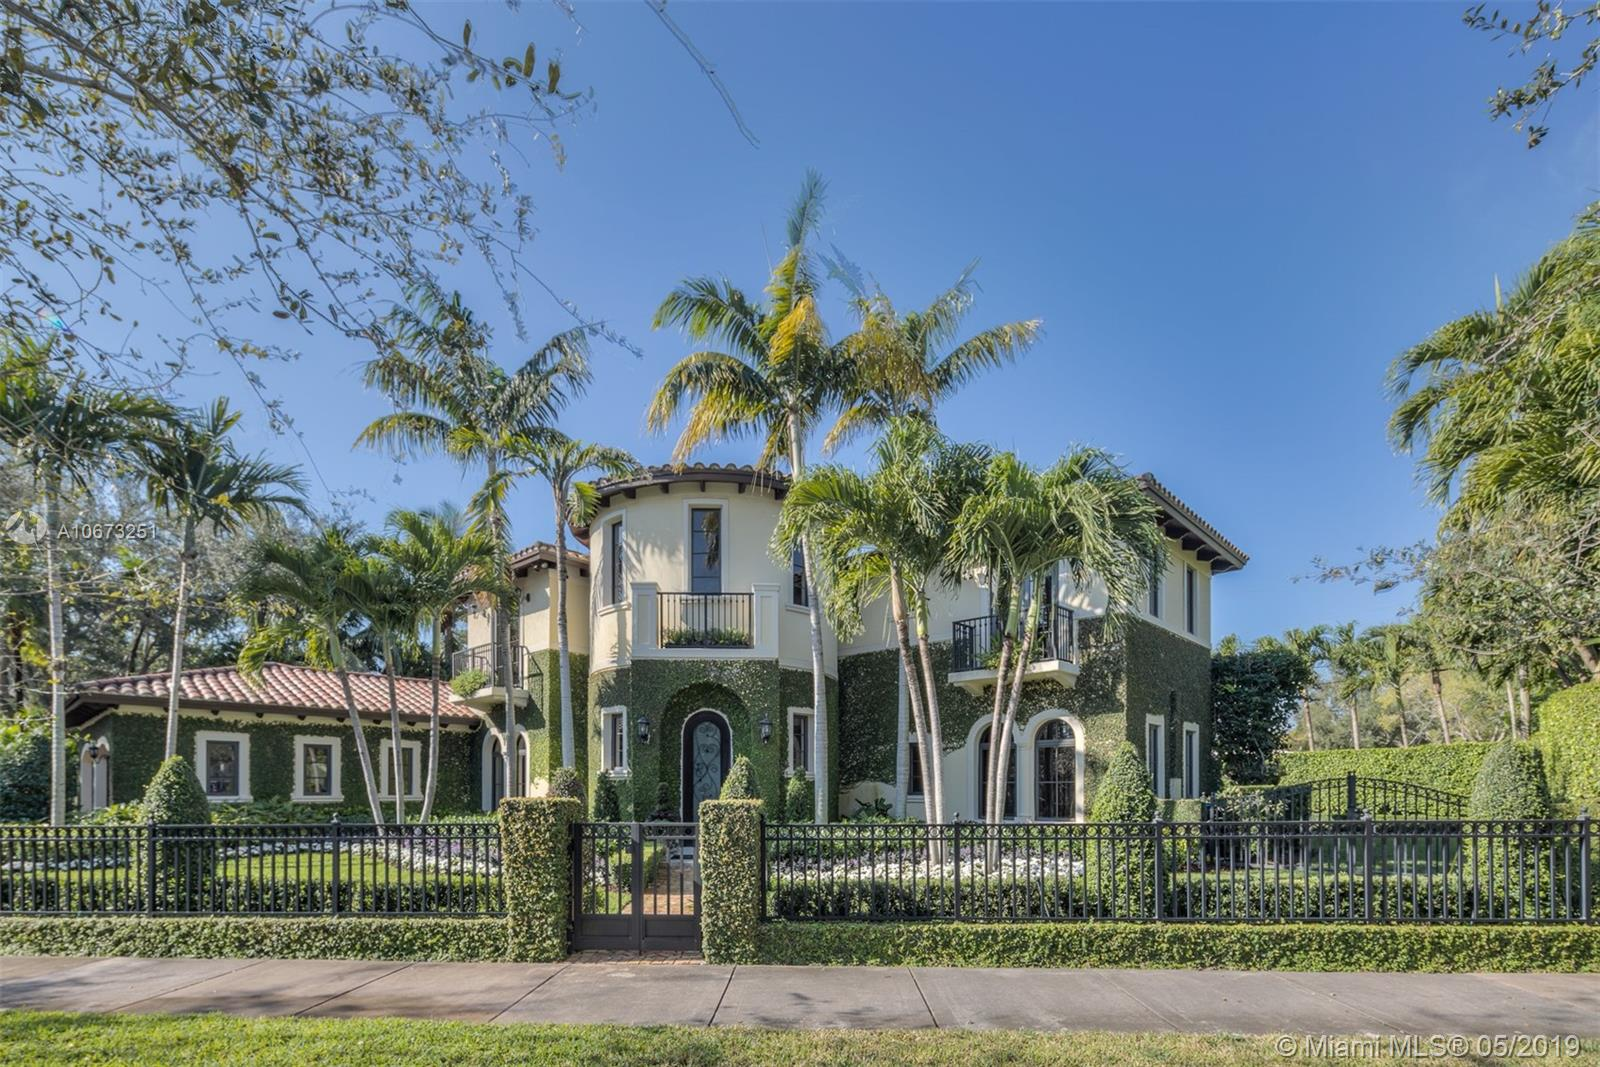 5820 Augusto St, Coral Gables, Florida